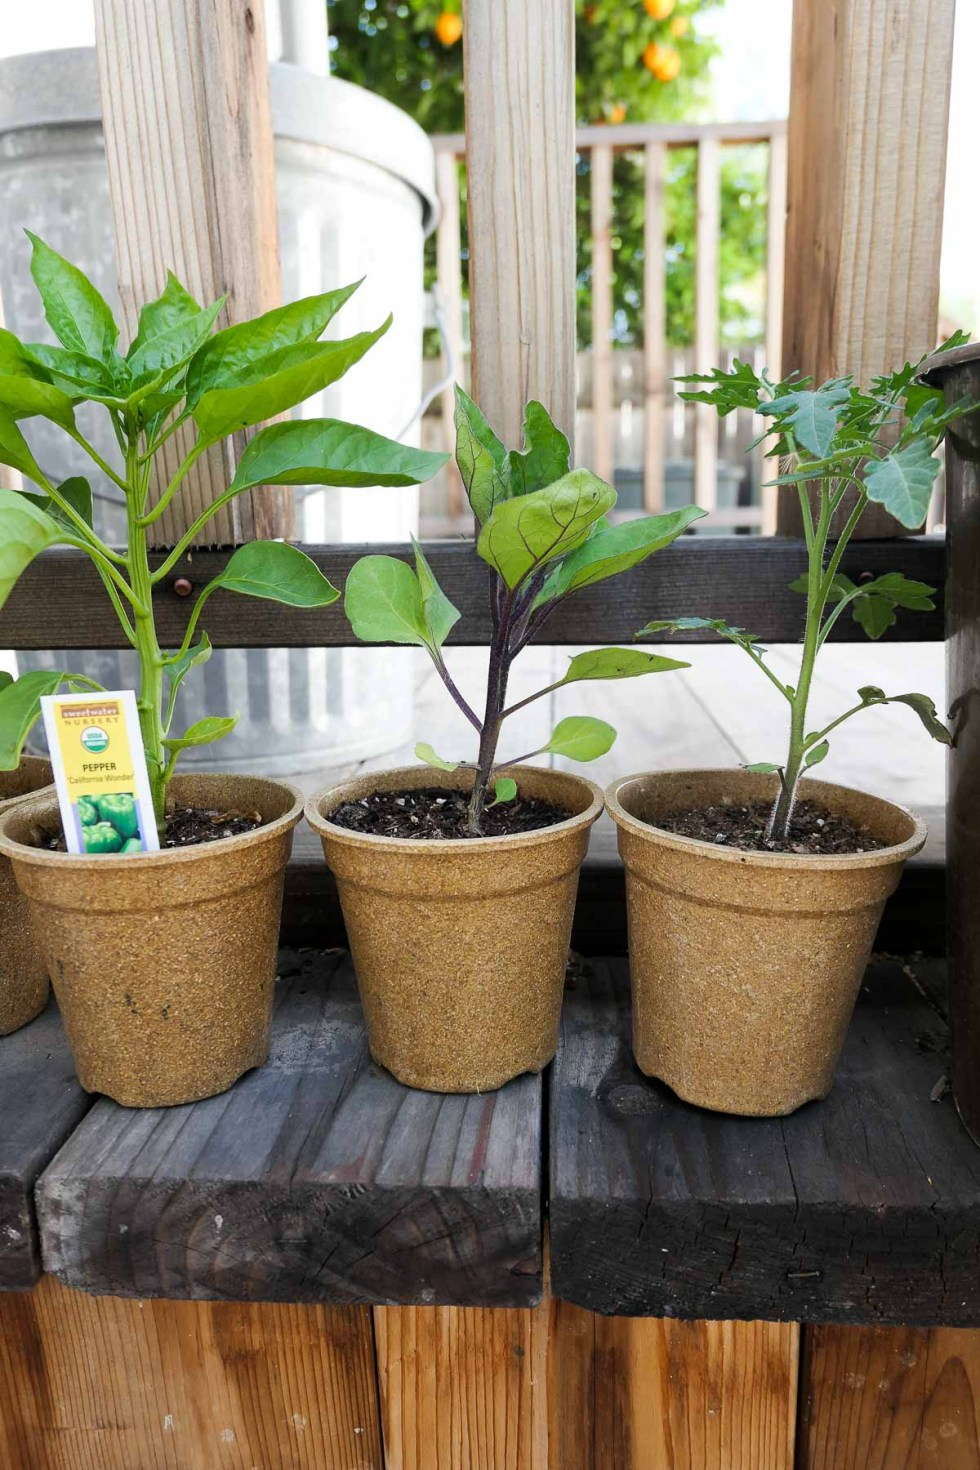 How to Recycle Household Goods -Plastic Garden Pots on Porch - Close Up